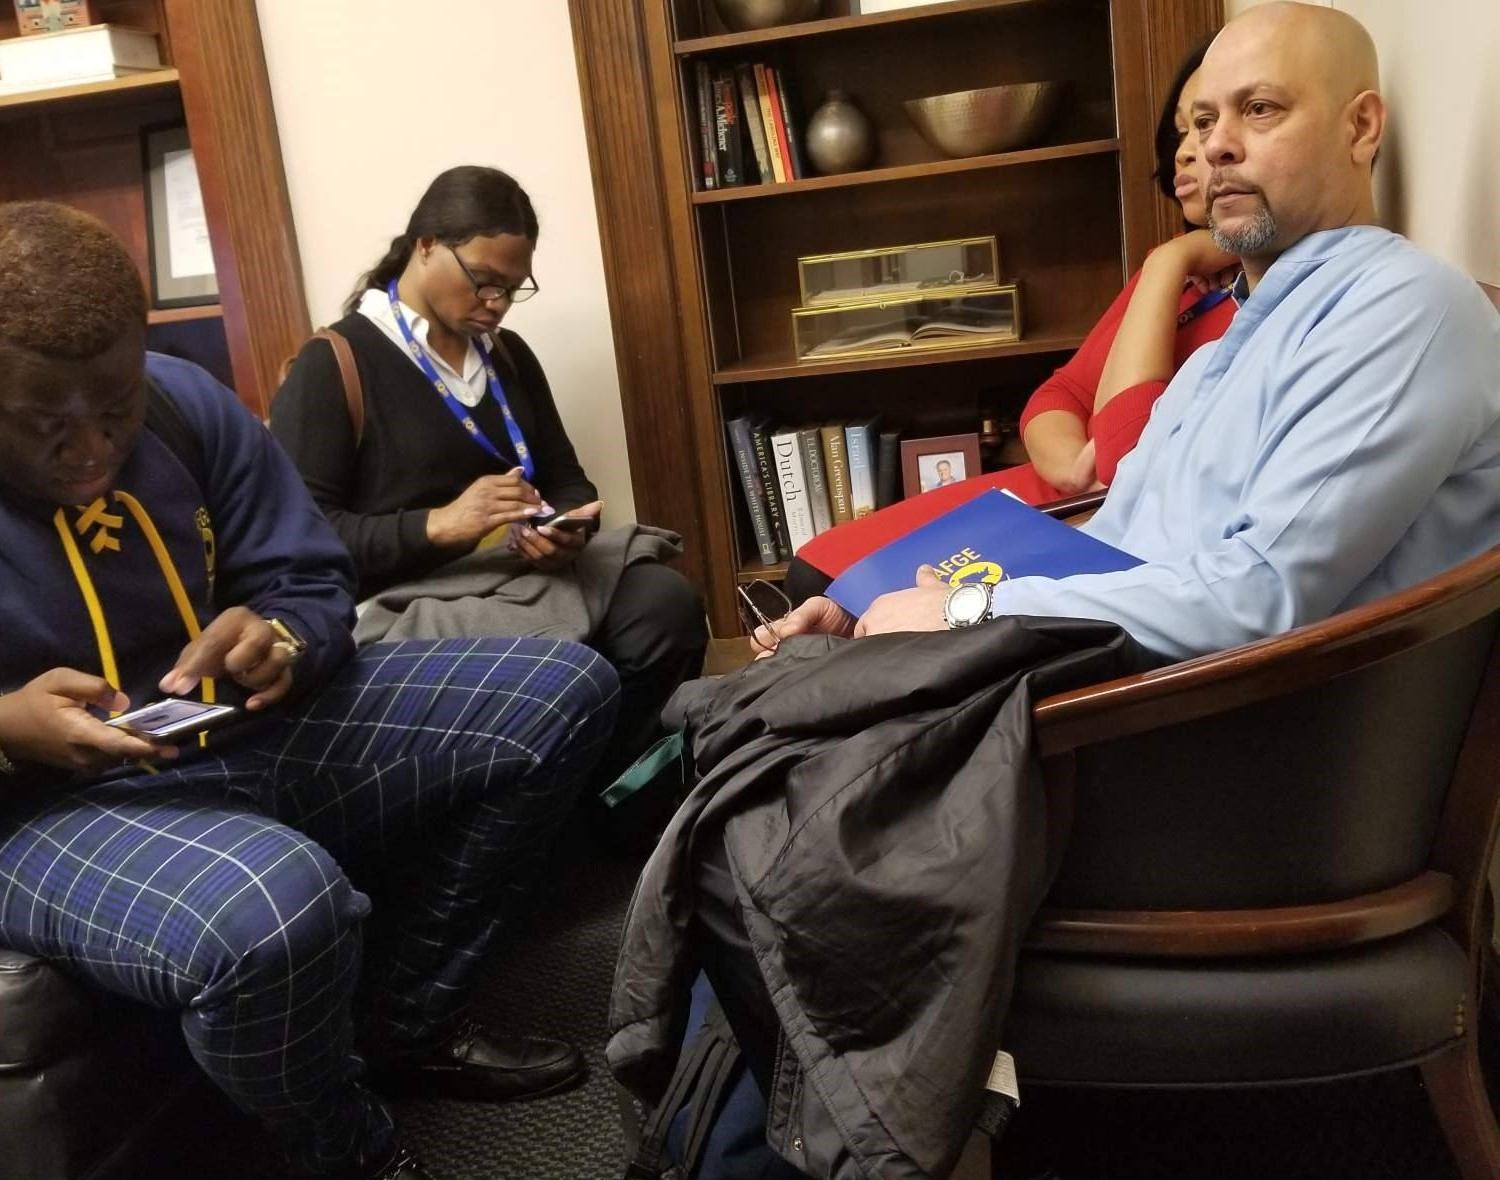 AFGE members in Rep. Ferguson's office Monday seated next to the book display.